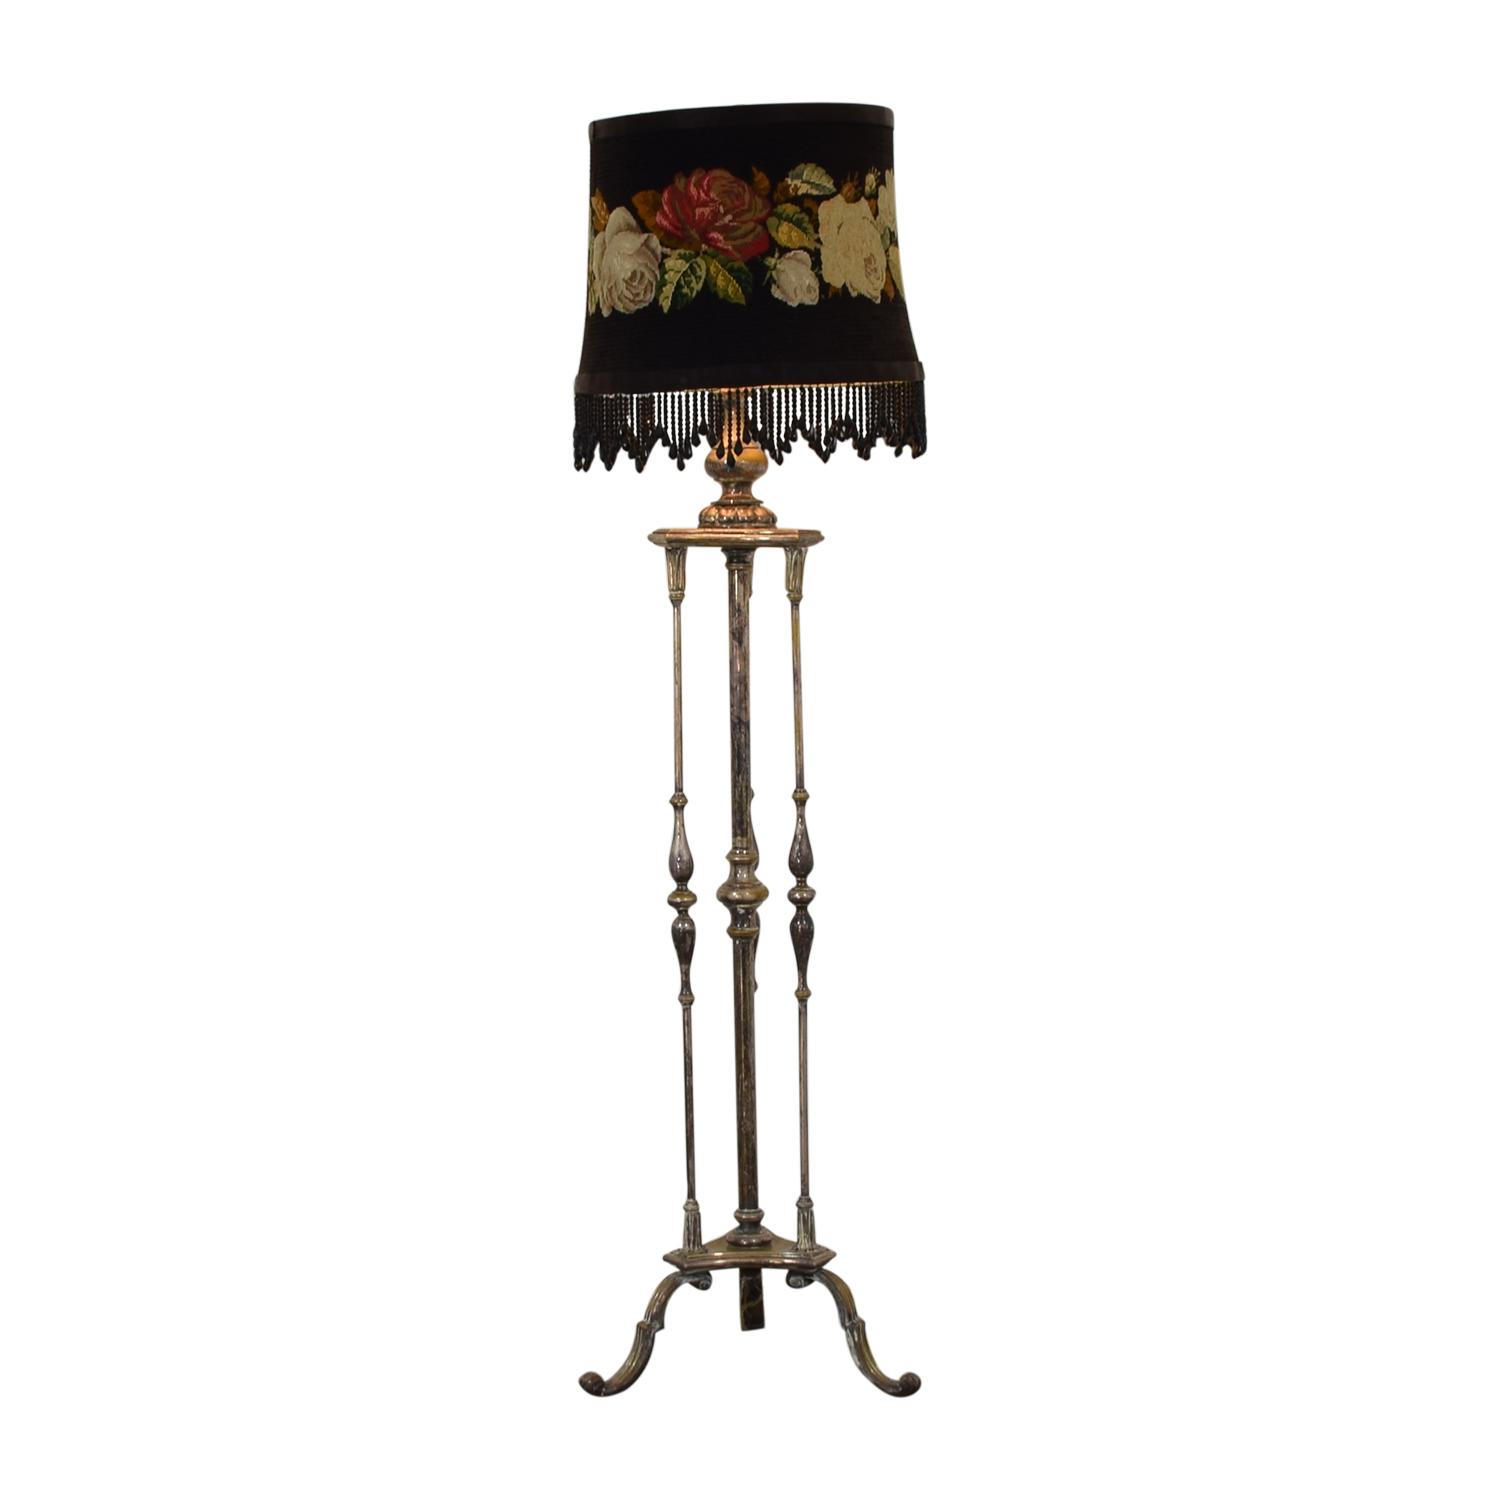 Antique Silver Plated Floral Needlepoint Floor Lamp nyc